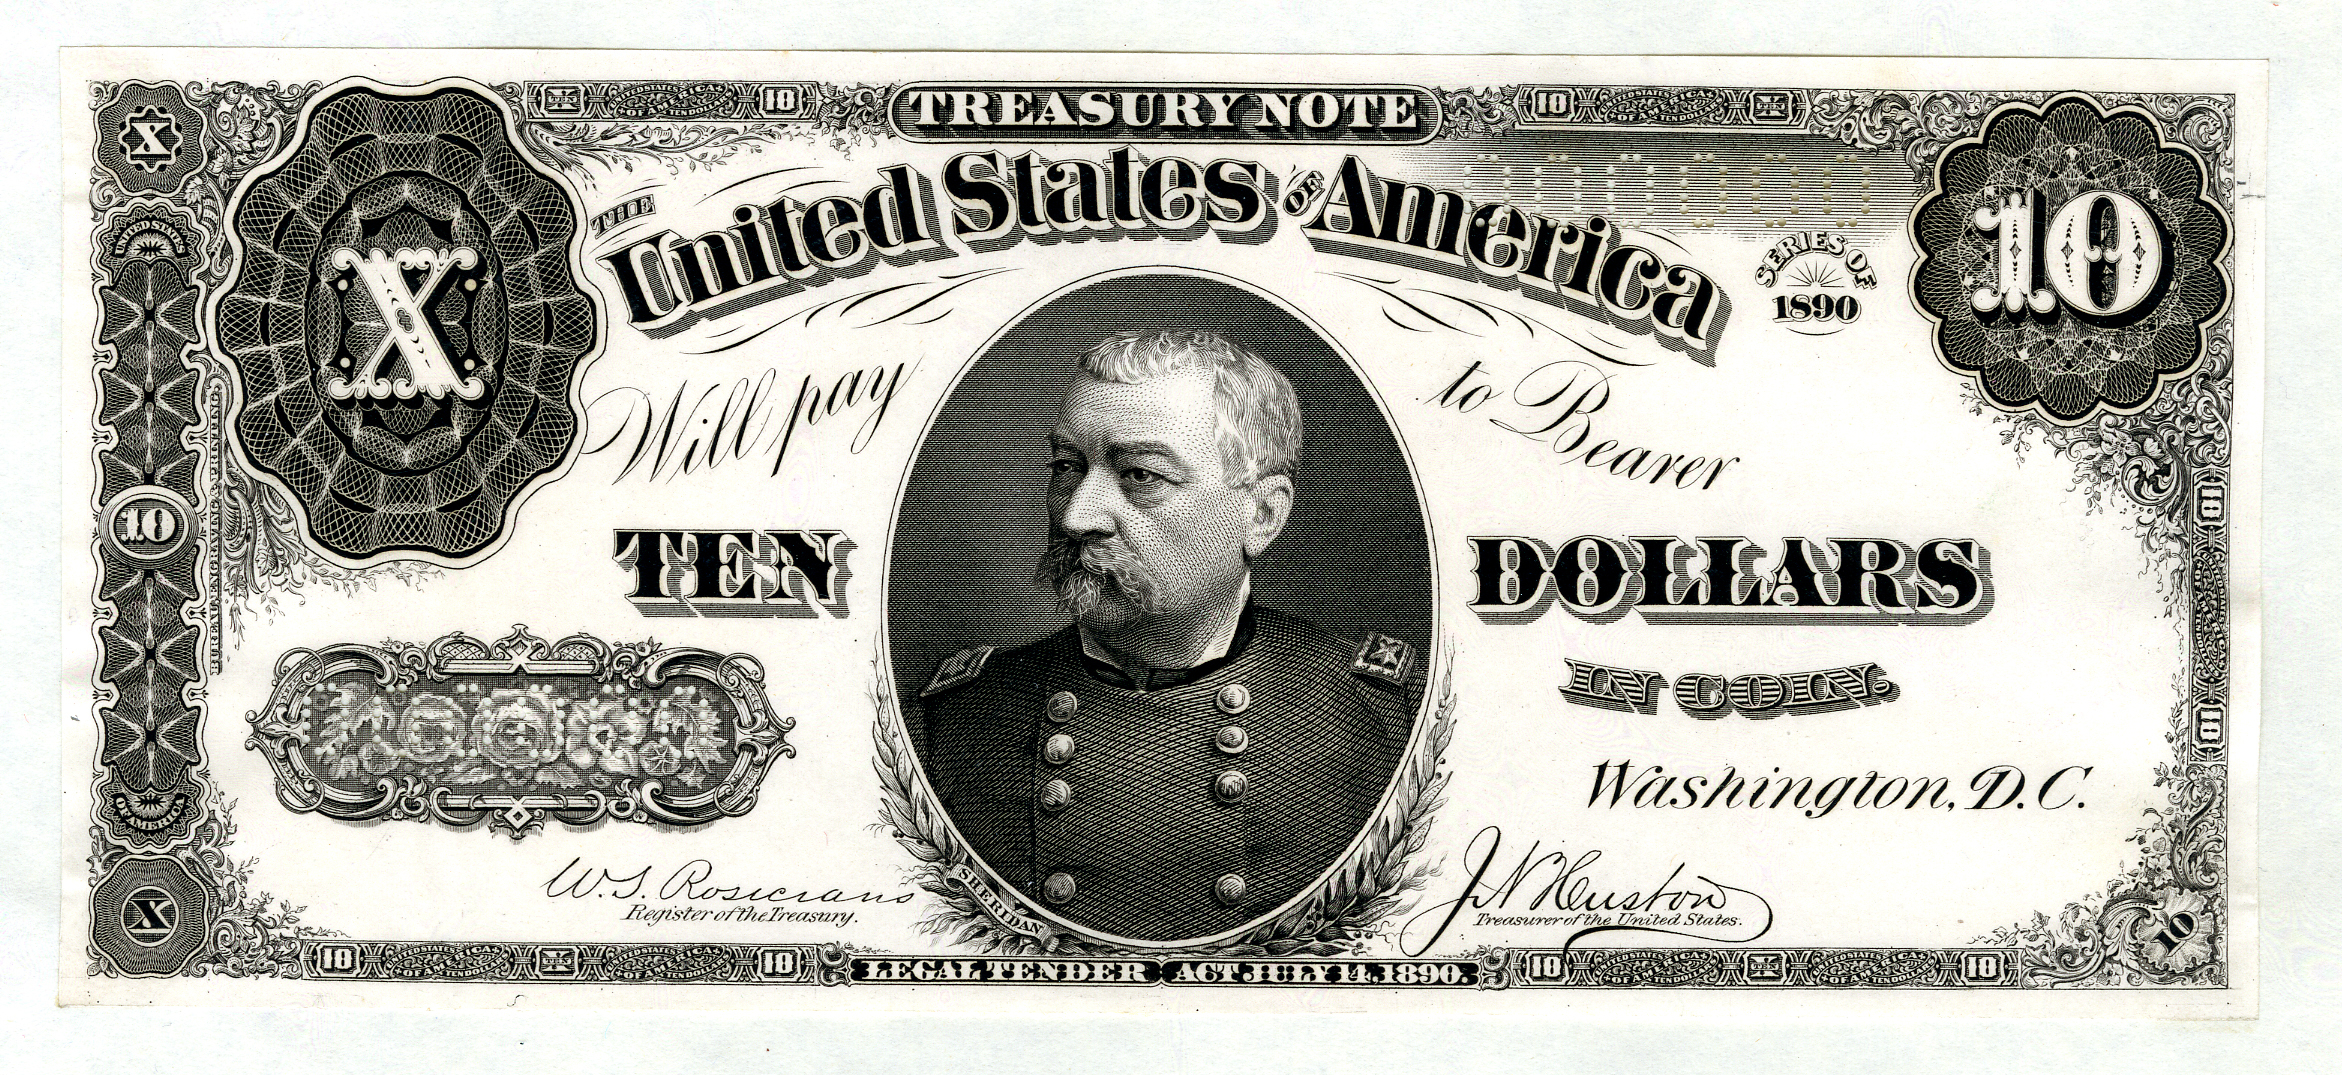 """U.S. Legal Tender Treasury Note Unique Presentation Proof, $10, Series of 1890, Fr.#366 Unlisted Proof. Washington, D.C. Unlisted, Unpublished in Hessler, Unique Proof from presentation album. Philip Henry Sheridan portrait in middle, Rosecrans 